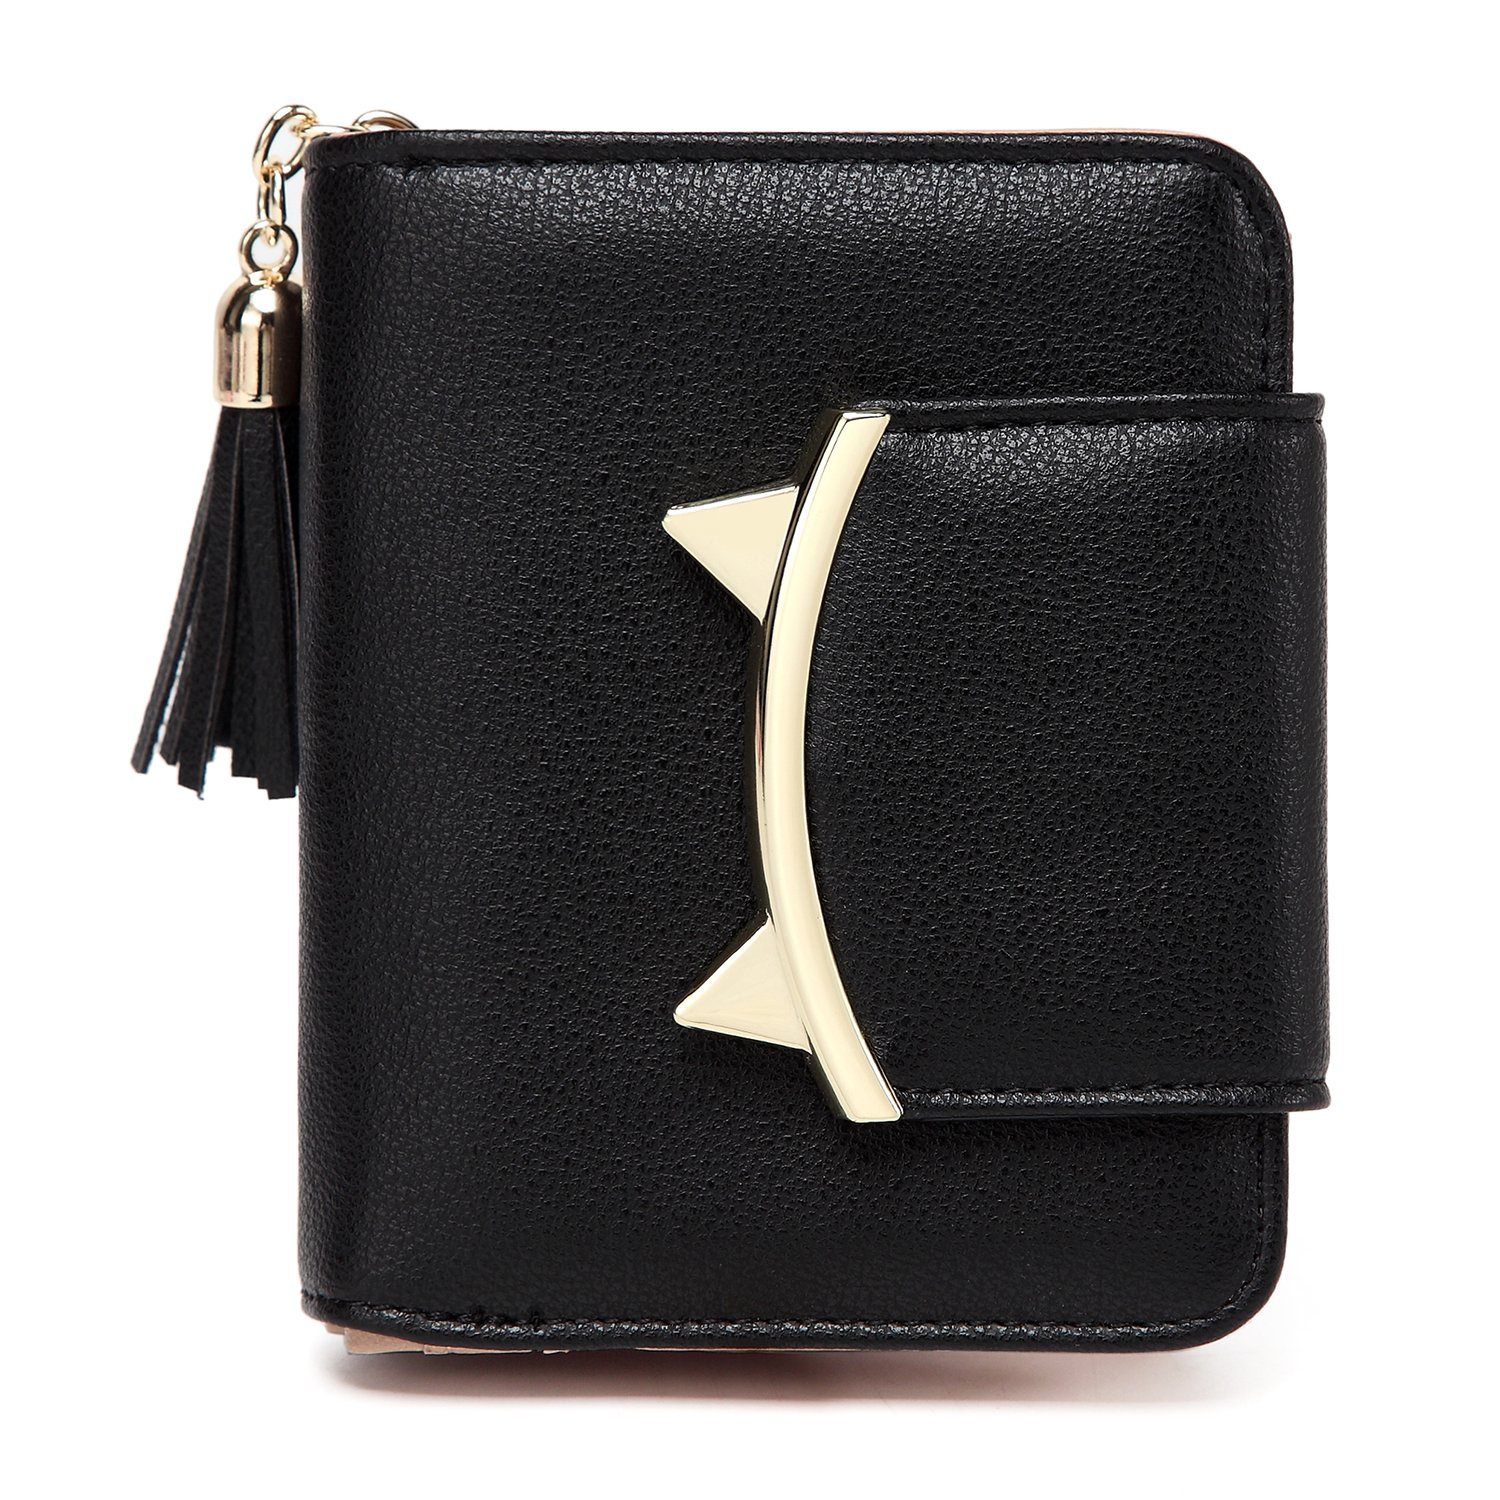 Women Cute Cat Mini Wallets Design Coin Purse Leather Tassel Wallet AM02_Black